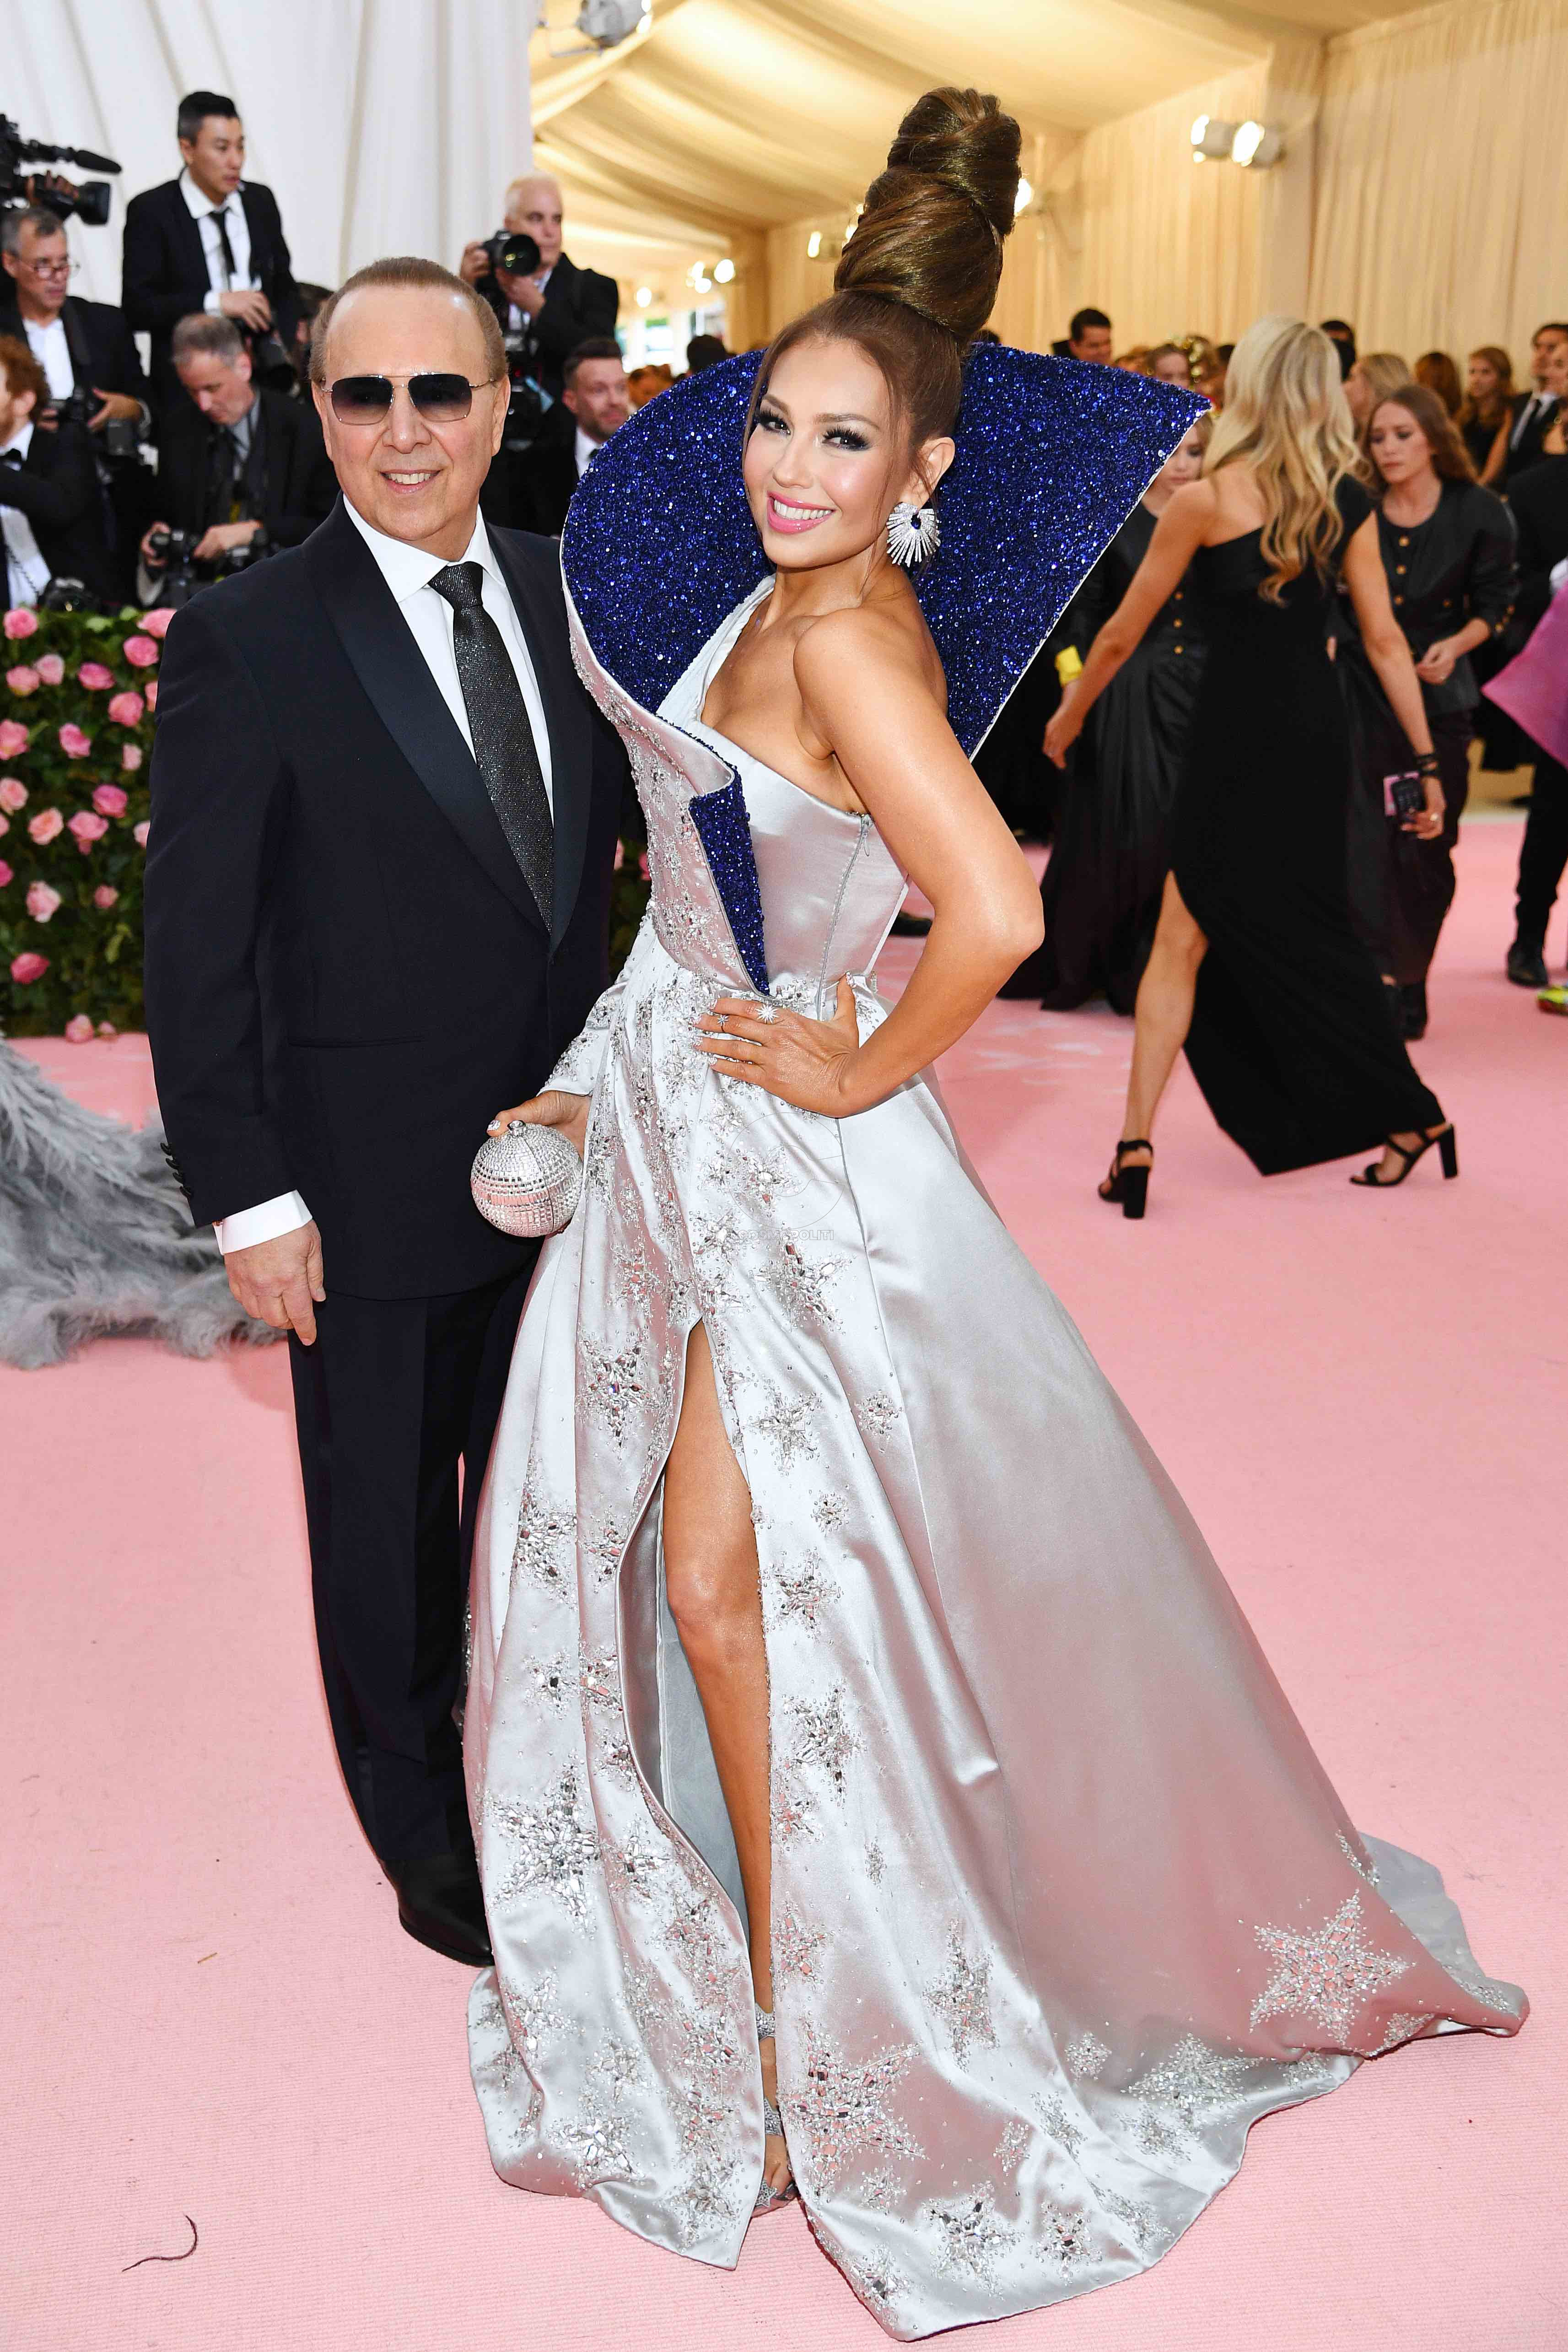 NEW YORK, NEW YORK - MAY 06: Tommy Mottola and Thalia attend The 2019 Met Gala Celebrating Camp: Notes on Fashion at Metropolitan Museum of Art on May 06, 2019 in New York City. (Photo by Dimitrios Kambouris/Getty Images for The Met Museum/Vogue)